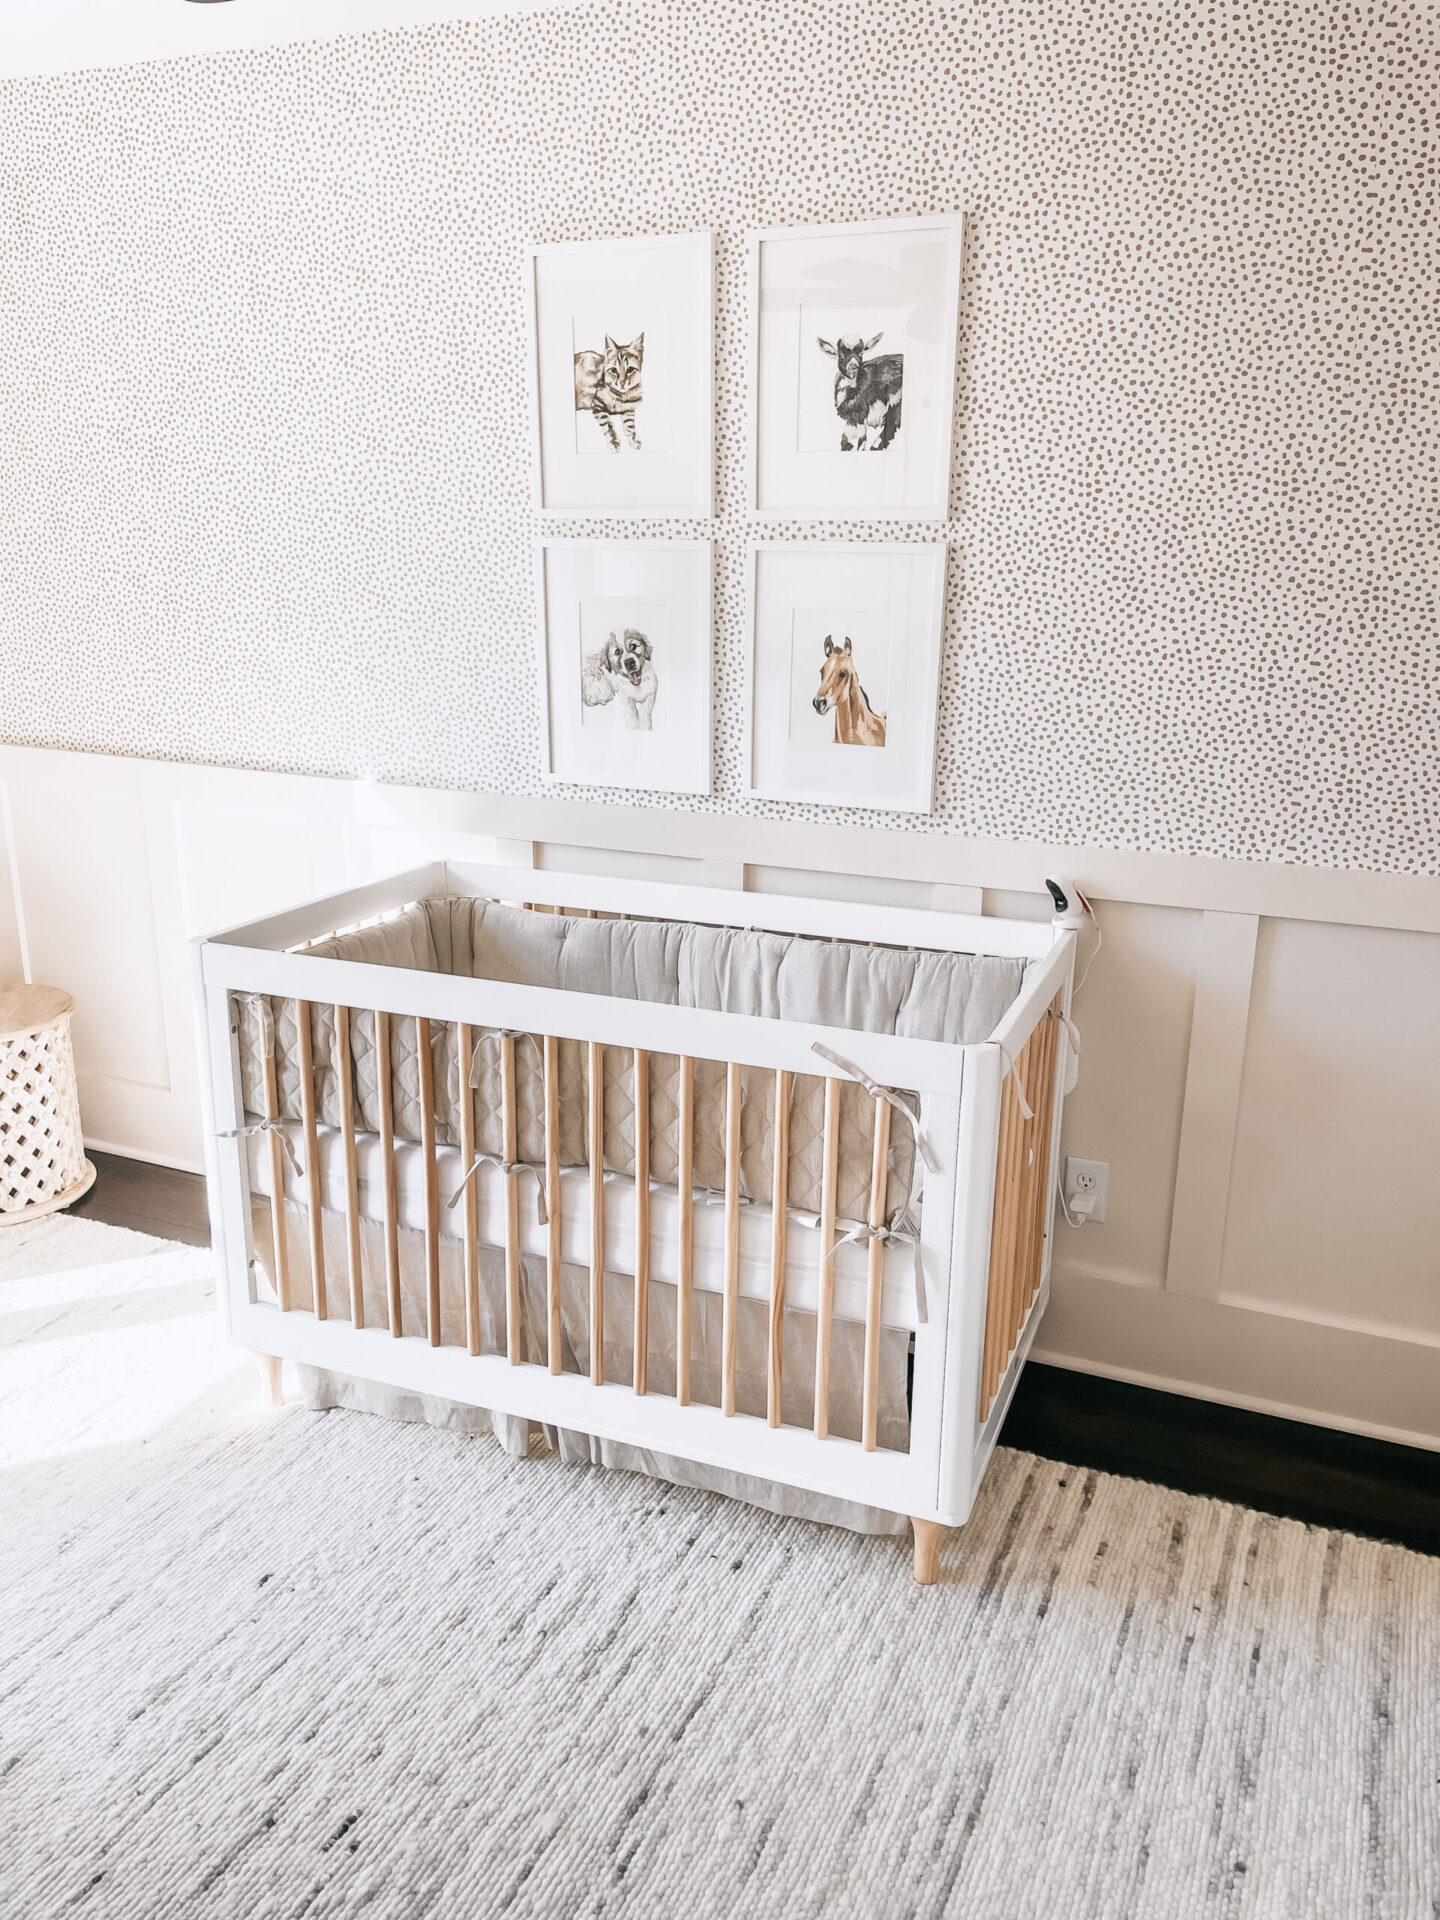 Gender Neutral Nursery by popular Atlanta lifestyle blog, Moderately High Maintenance: image of a nursery with taupe dot wallpaper, board and batten wall, black stand modern floor lamp, white curtains, white rug,white framed animal prints, white and wood crib with grey crib bedding, round wooden table, and beige rocker.